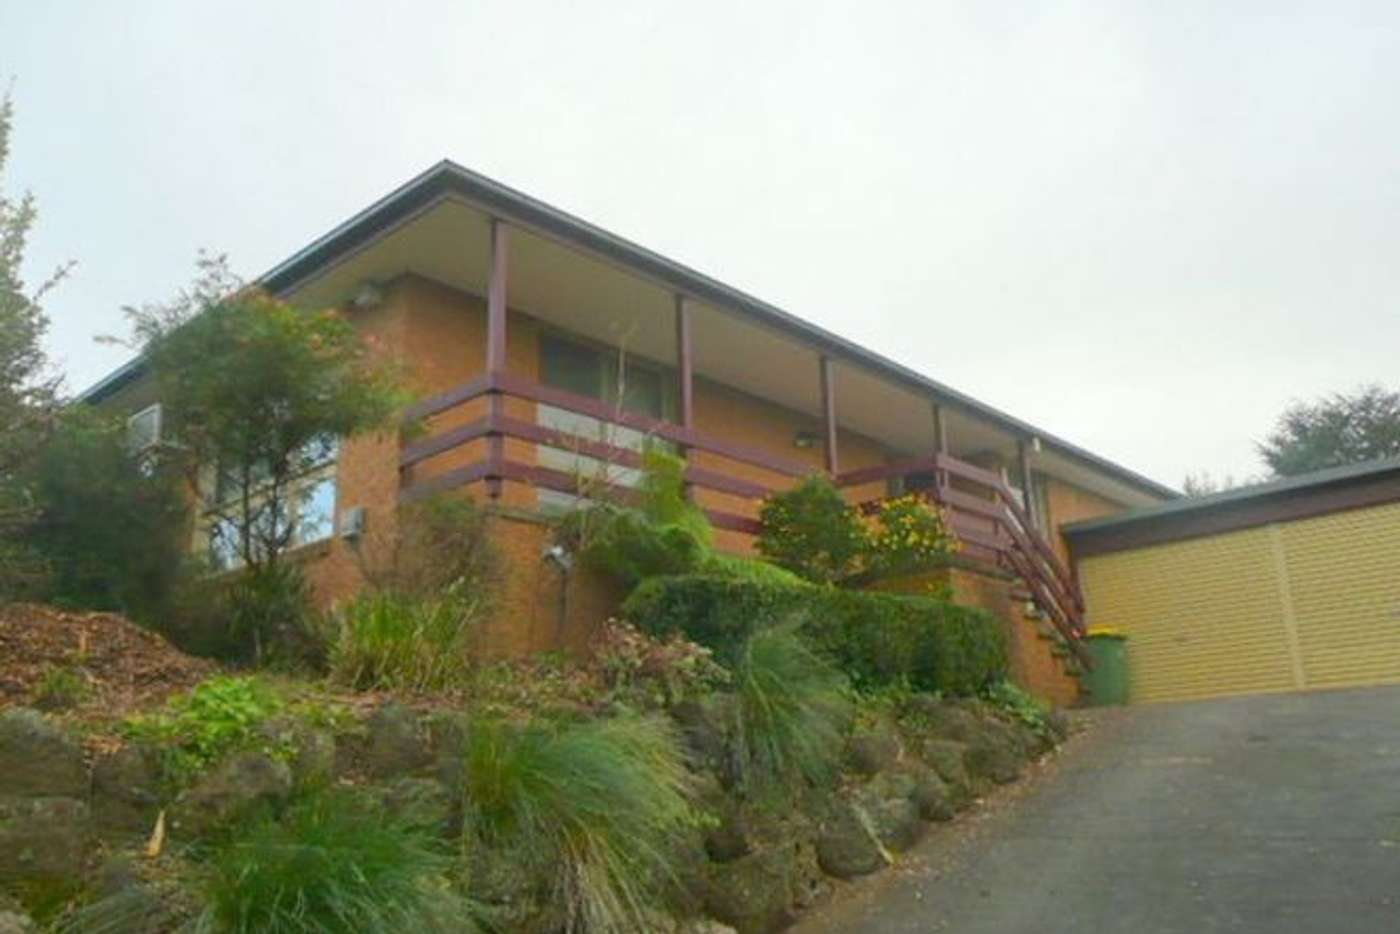 Main view of Homely house listing, 31 Eastwood Cres, Mooroolbark VIC 3138